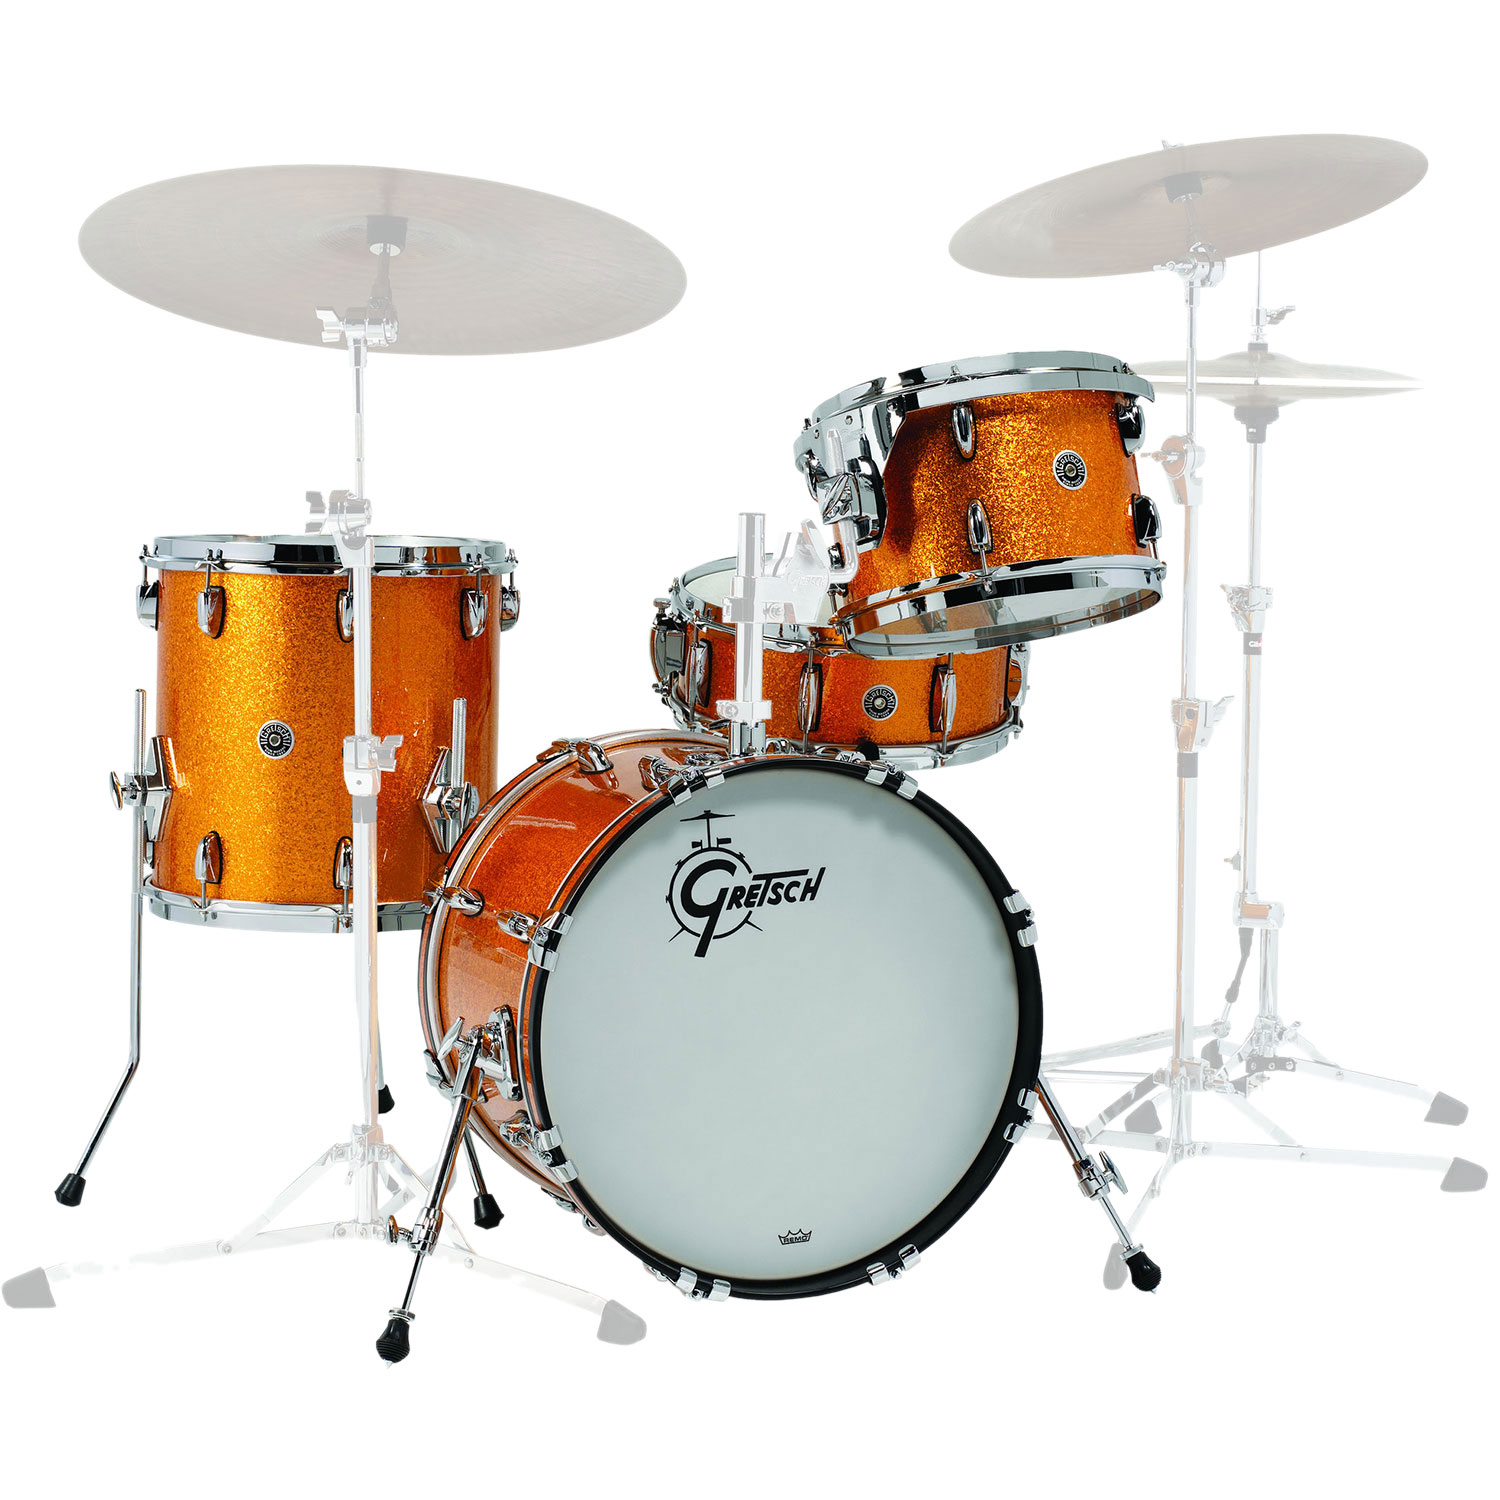 "Gretsch Brooklyn 4-Piece Drum Set Shell Pack (18"" Bass, 12/14"" Toms, 14"" Snare Drum) in Gold Sparkle Nitron - Demo Model"